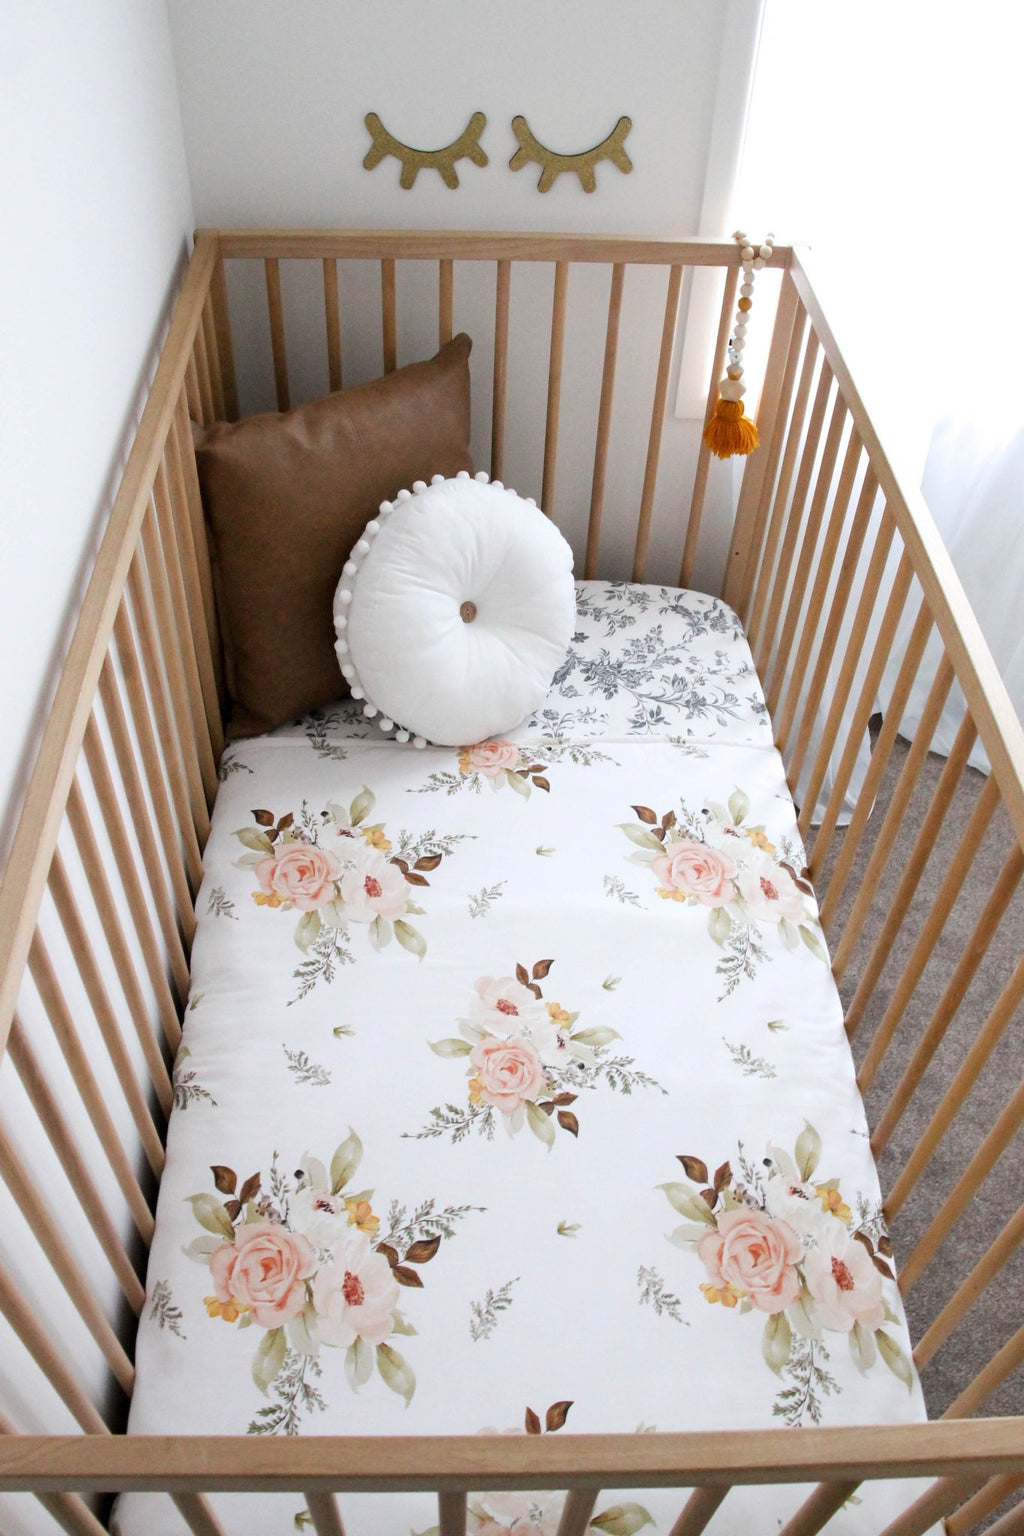 Autumn Floral Play Mat/Cot Quilt